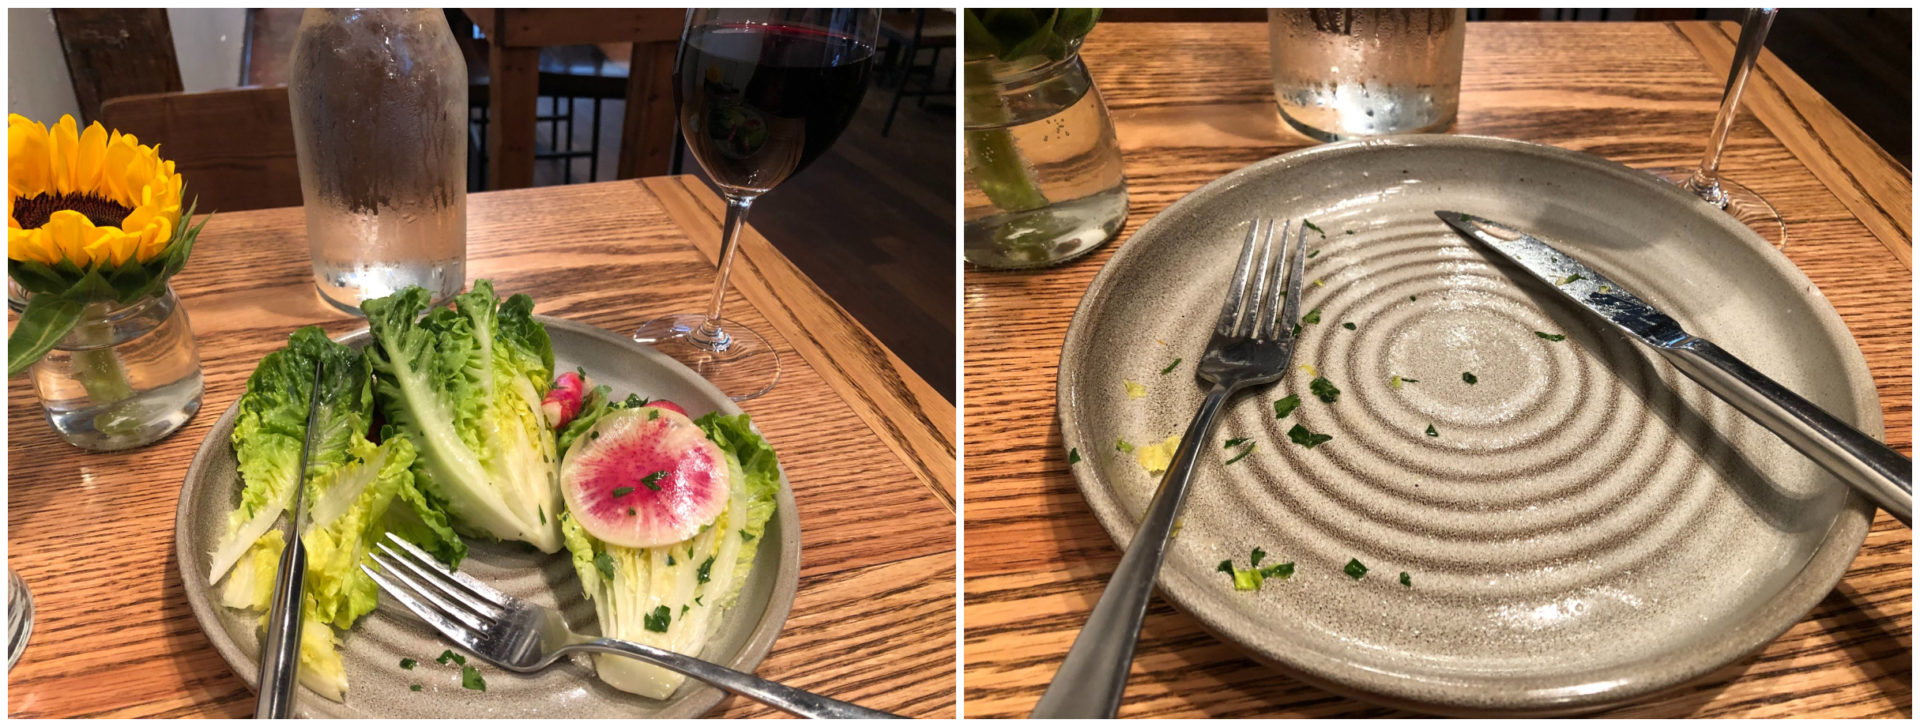 Radish and pearl salad at Mission in Pittsfield.  (Ed Siegel for WBUR)